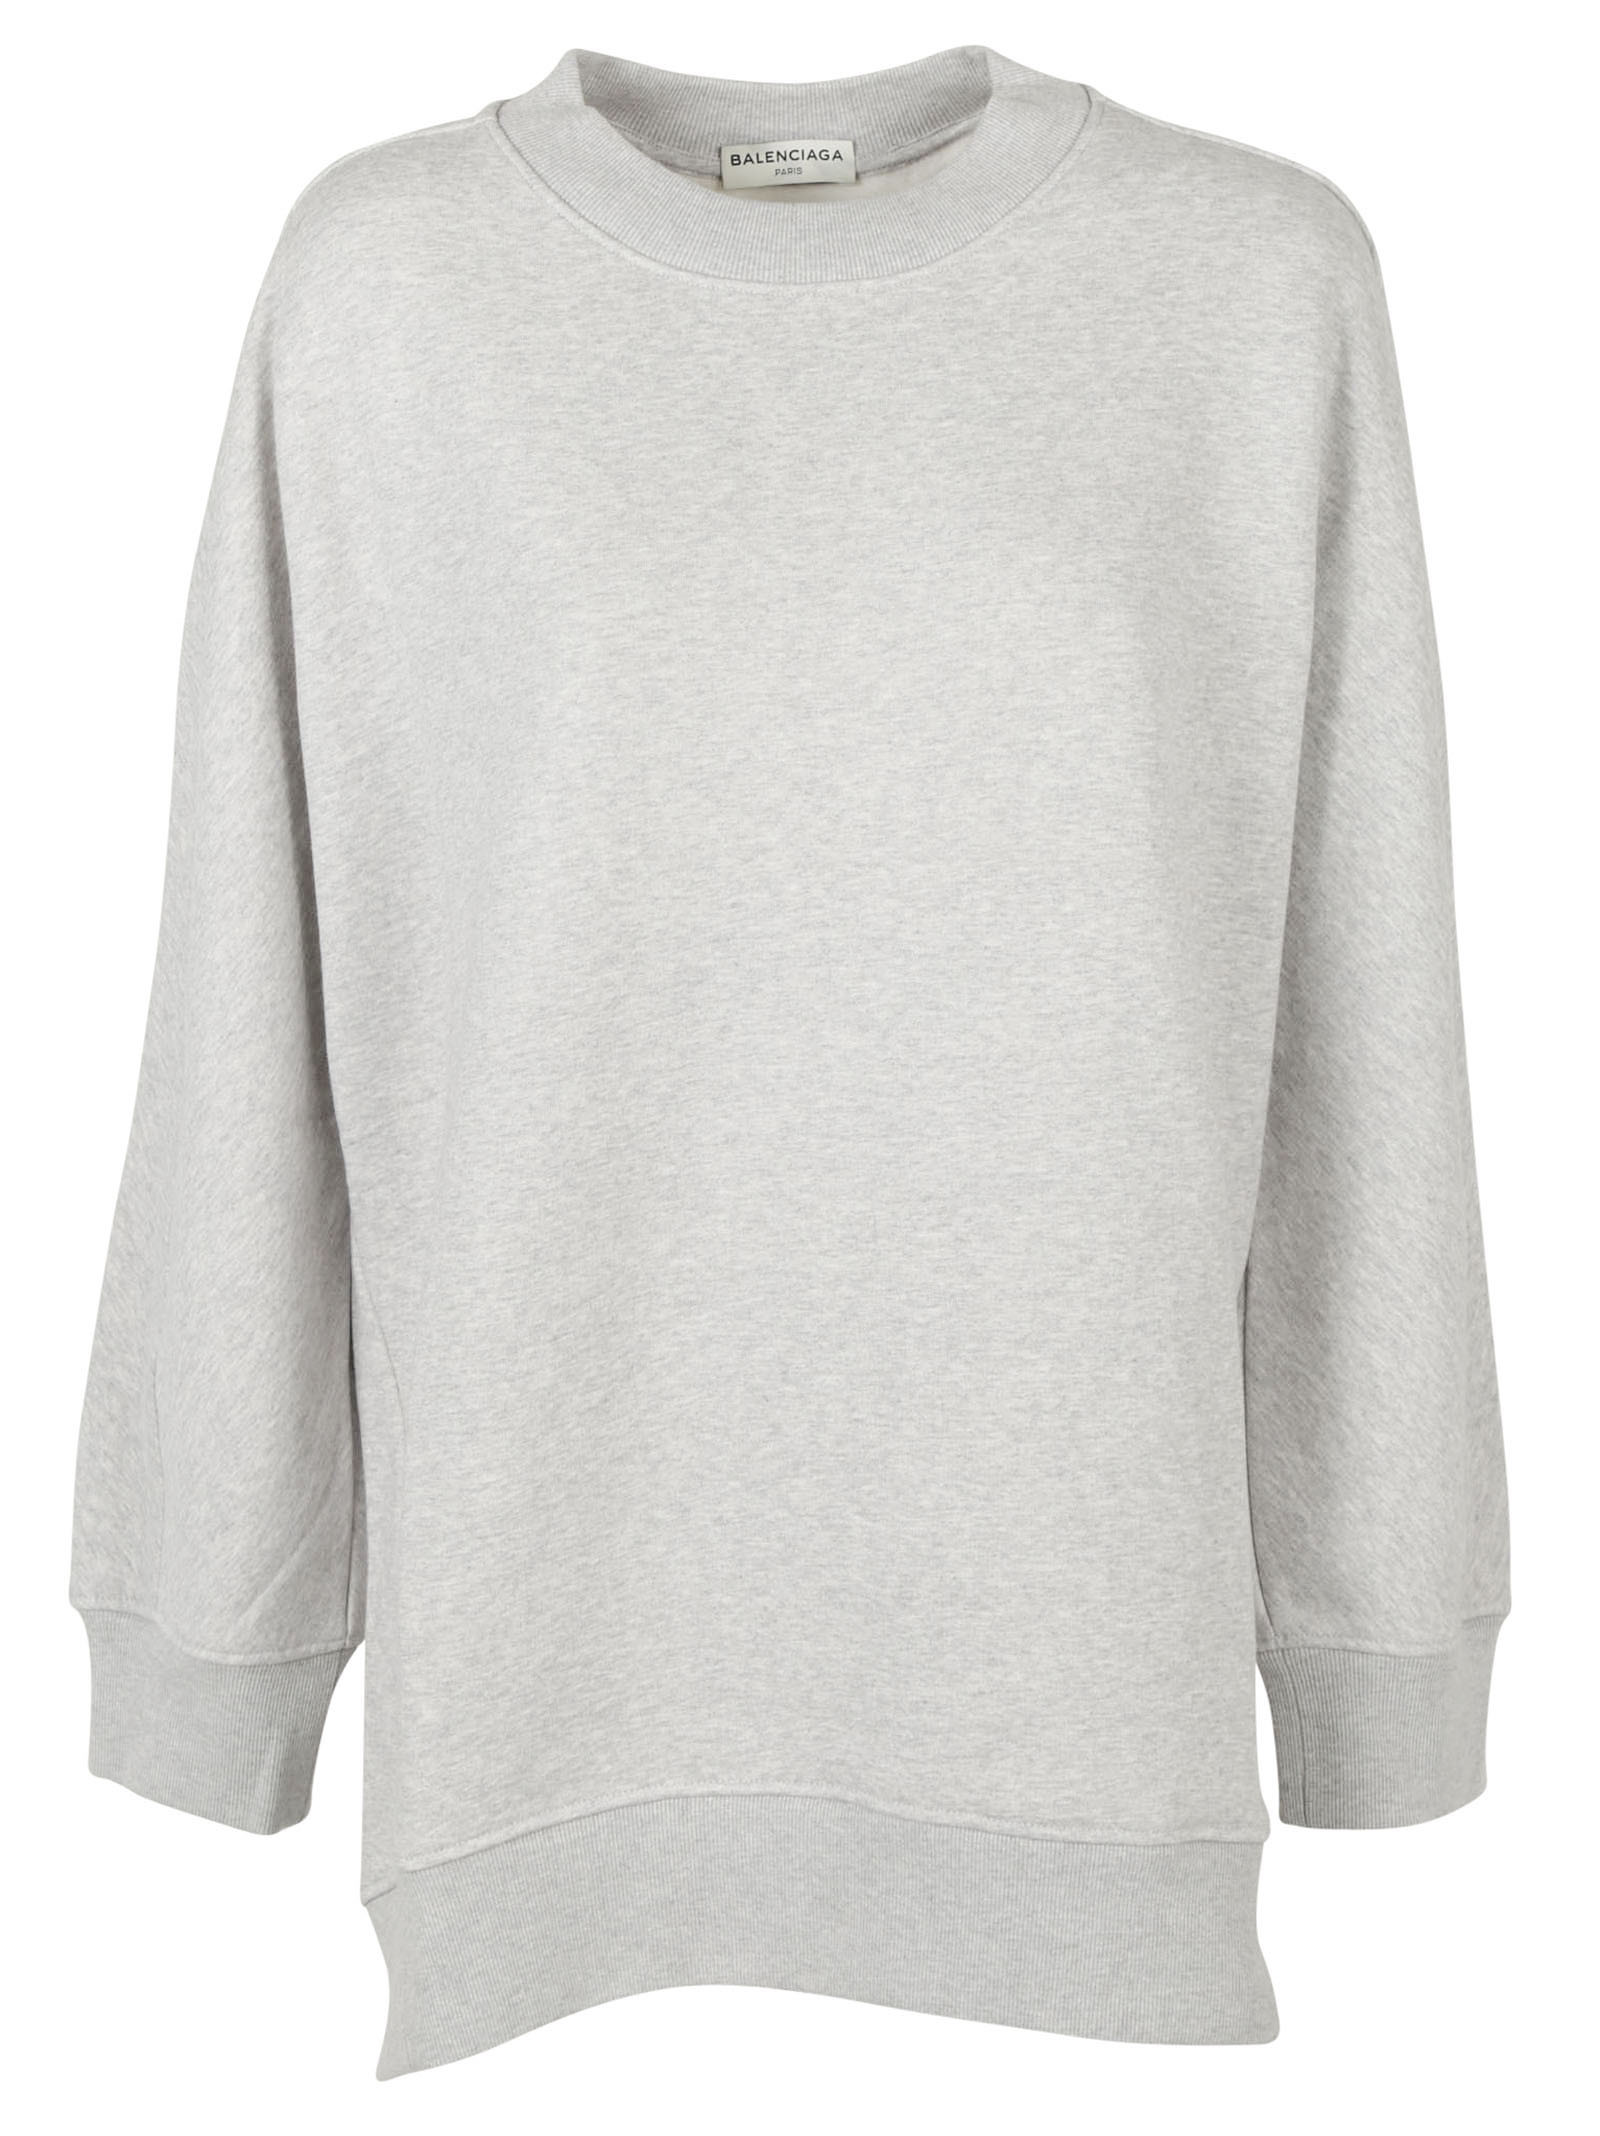 Over Sweatshirt from Balenciaga: Grey Over Sweatshirt with long sleeves, fitted cuffs and designers Paris address printed on the back